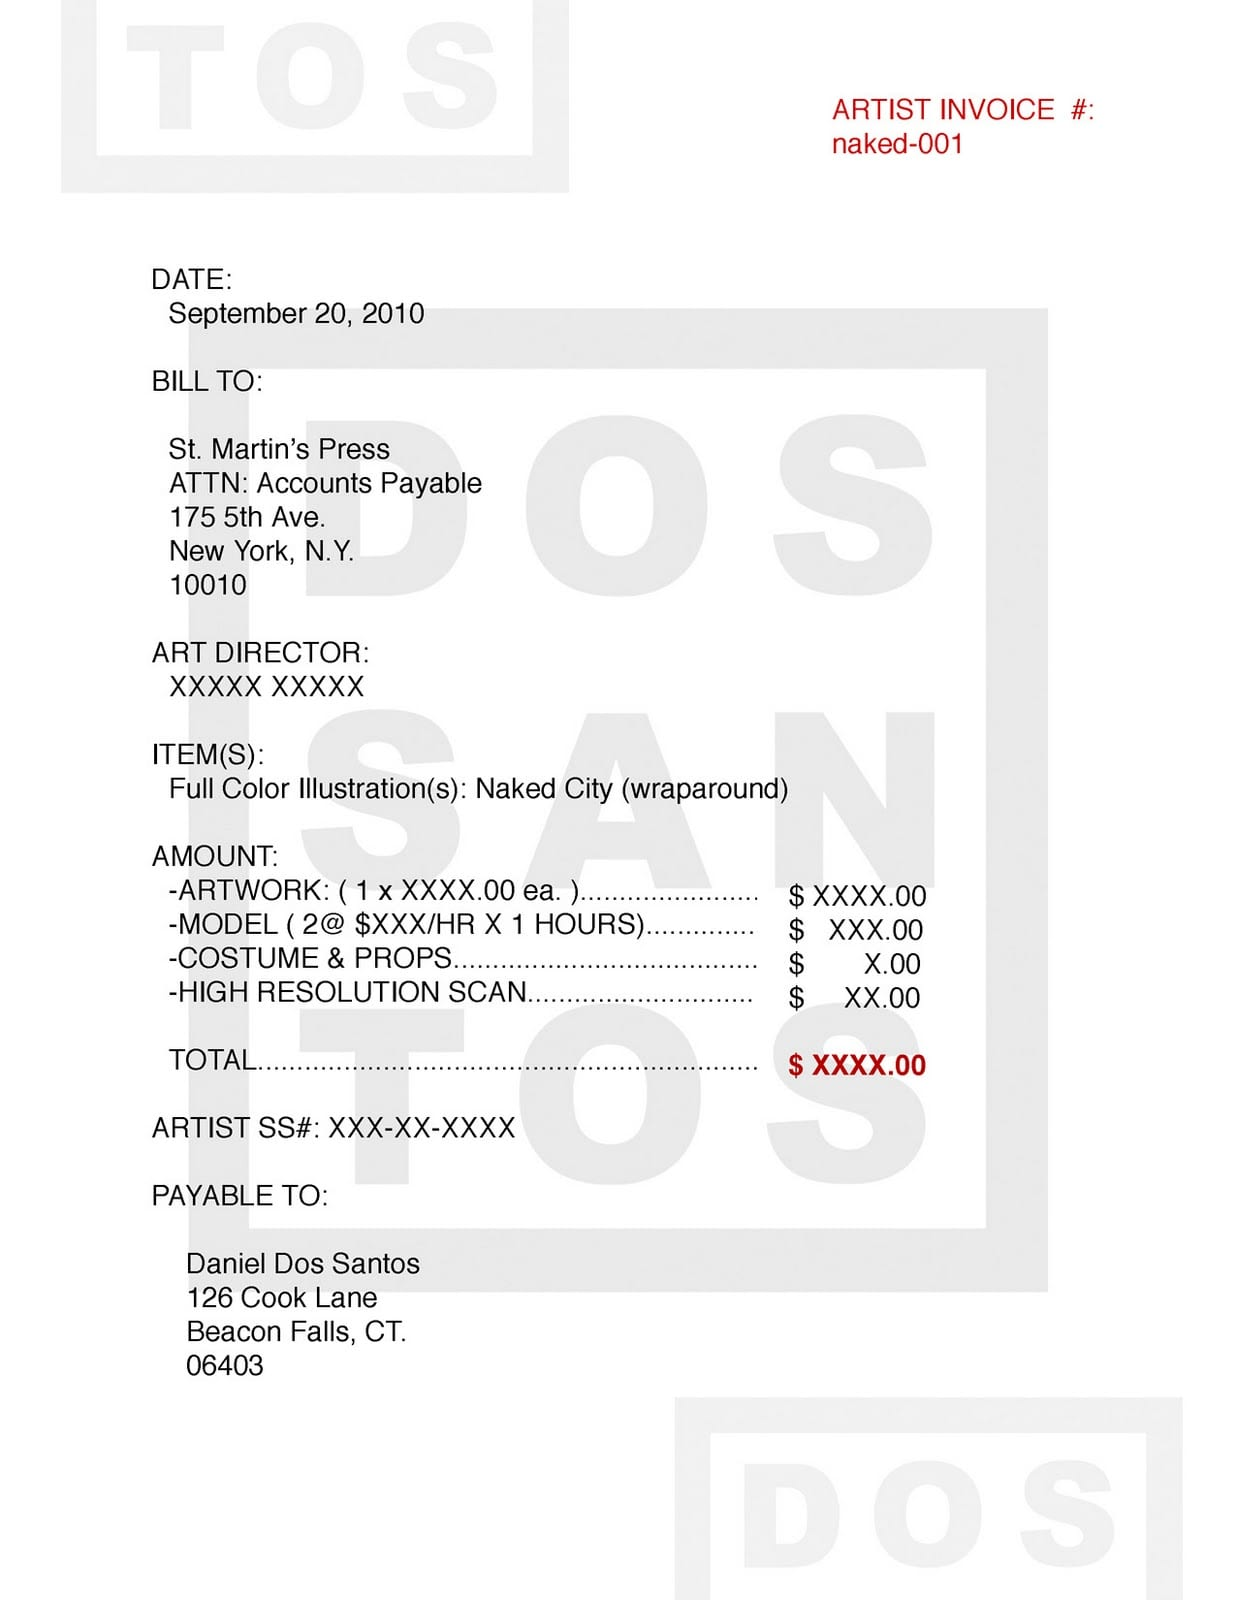 Artist Invoice Template Artist Invoice Sample Makeup Artist Invoice Sample Artist Bill Of Sale Freelance Artist Invoice Template Freelance Invoice Samples Freelance Makeup Artist Invoice Template